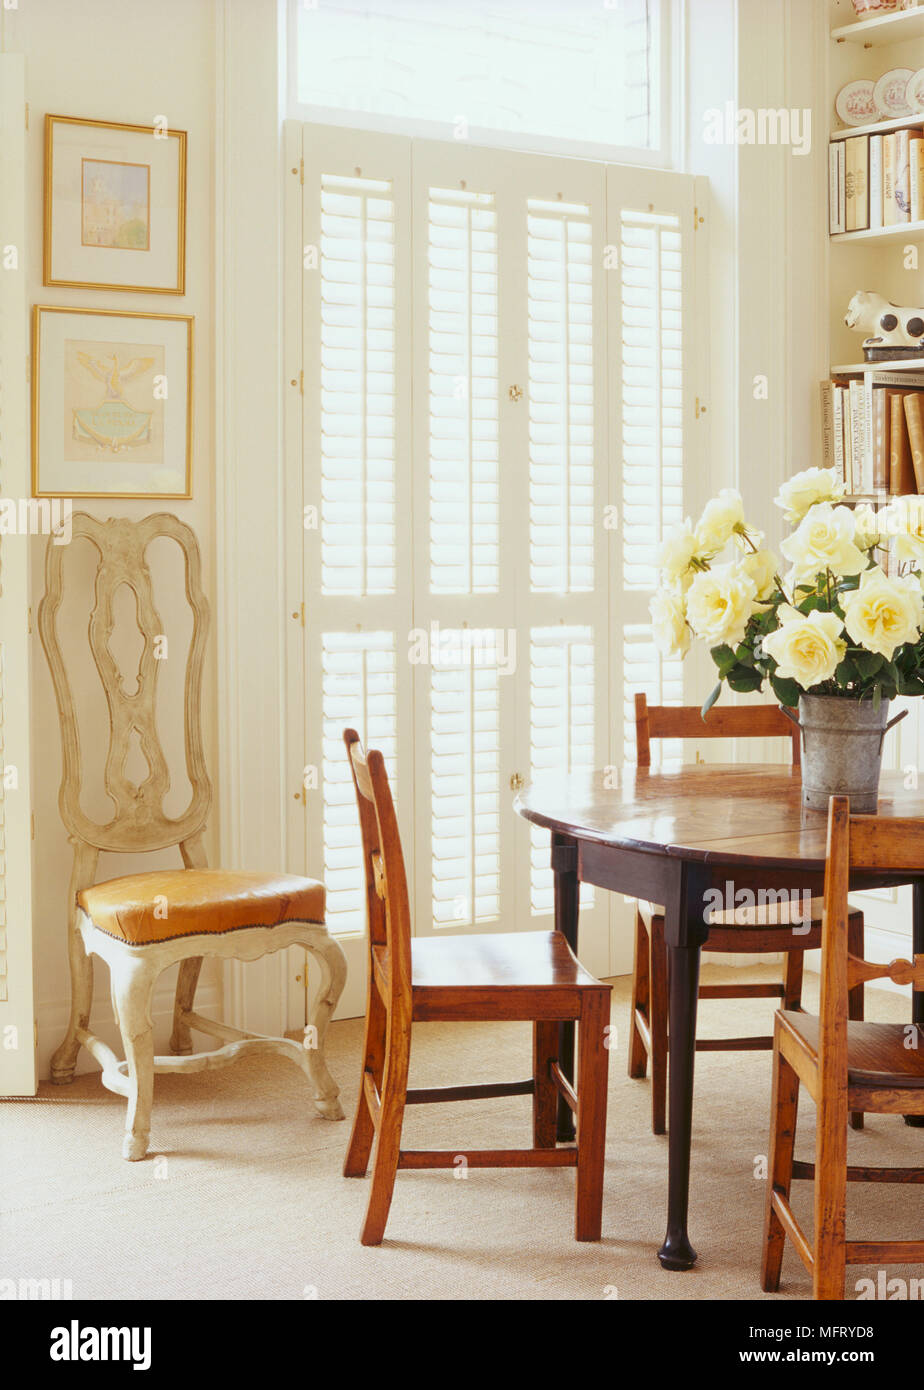 Awe Inspiring A Traditional Neutral Dining Room With Round Wood Table Gmtry Best Dining Table And Chair Ideas Images Gmtryco